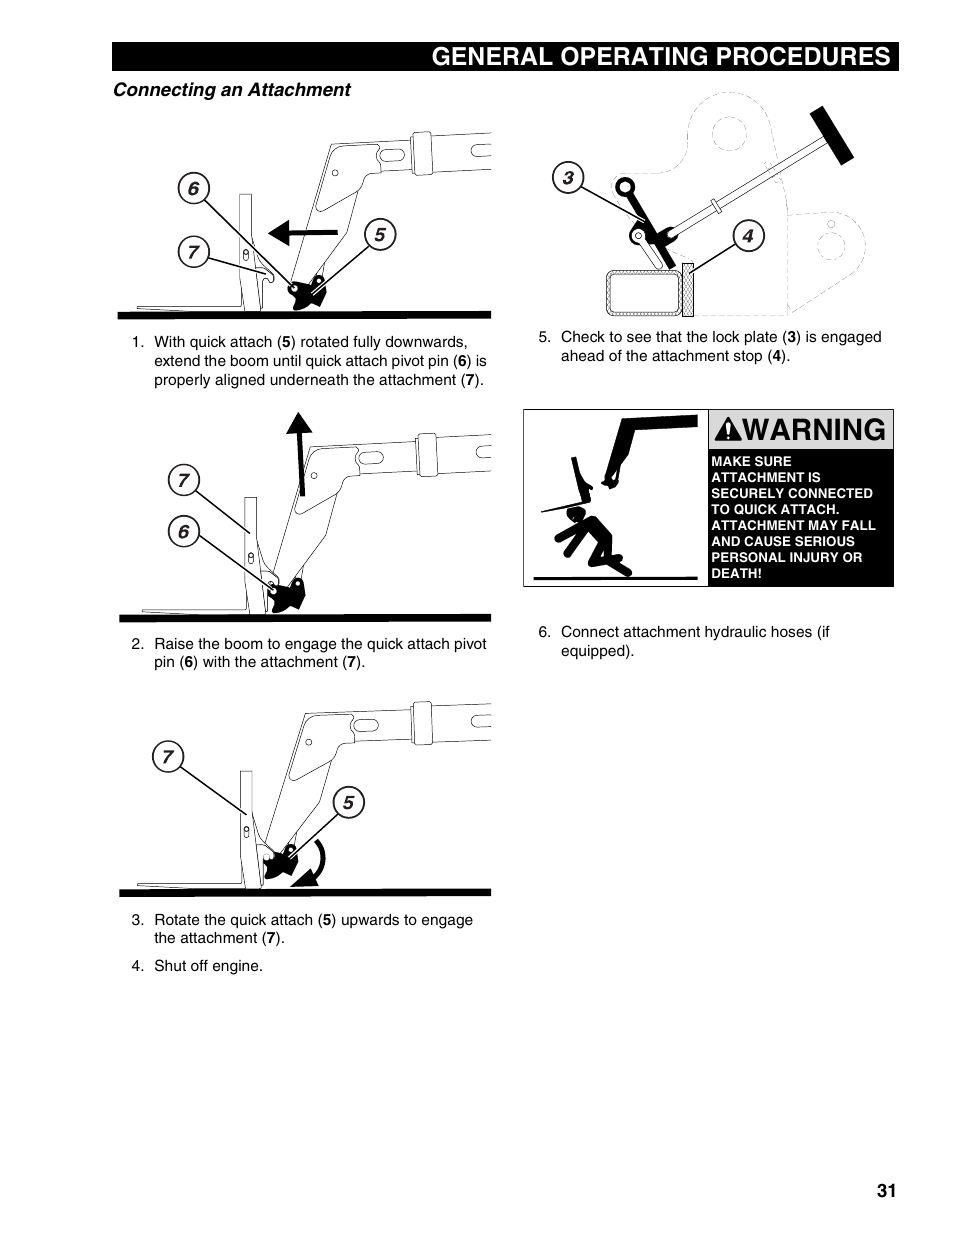 Connecting an attachment, Warning, General operating